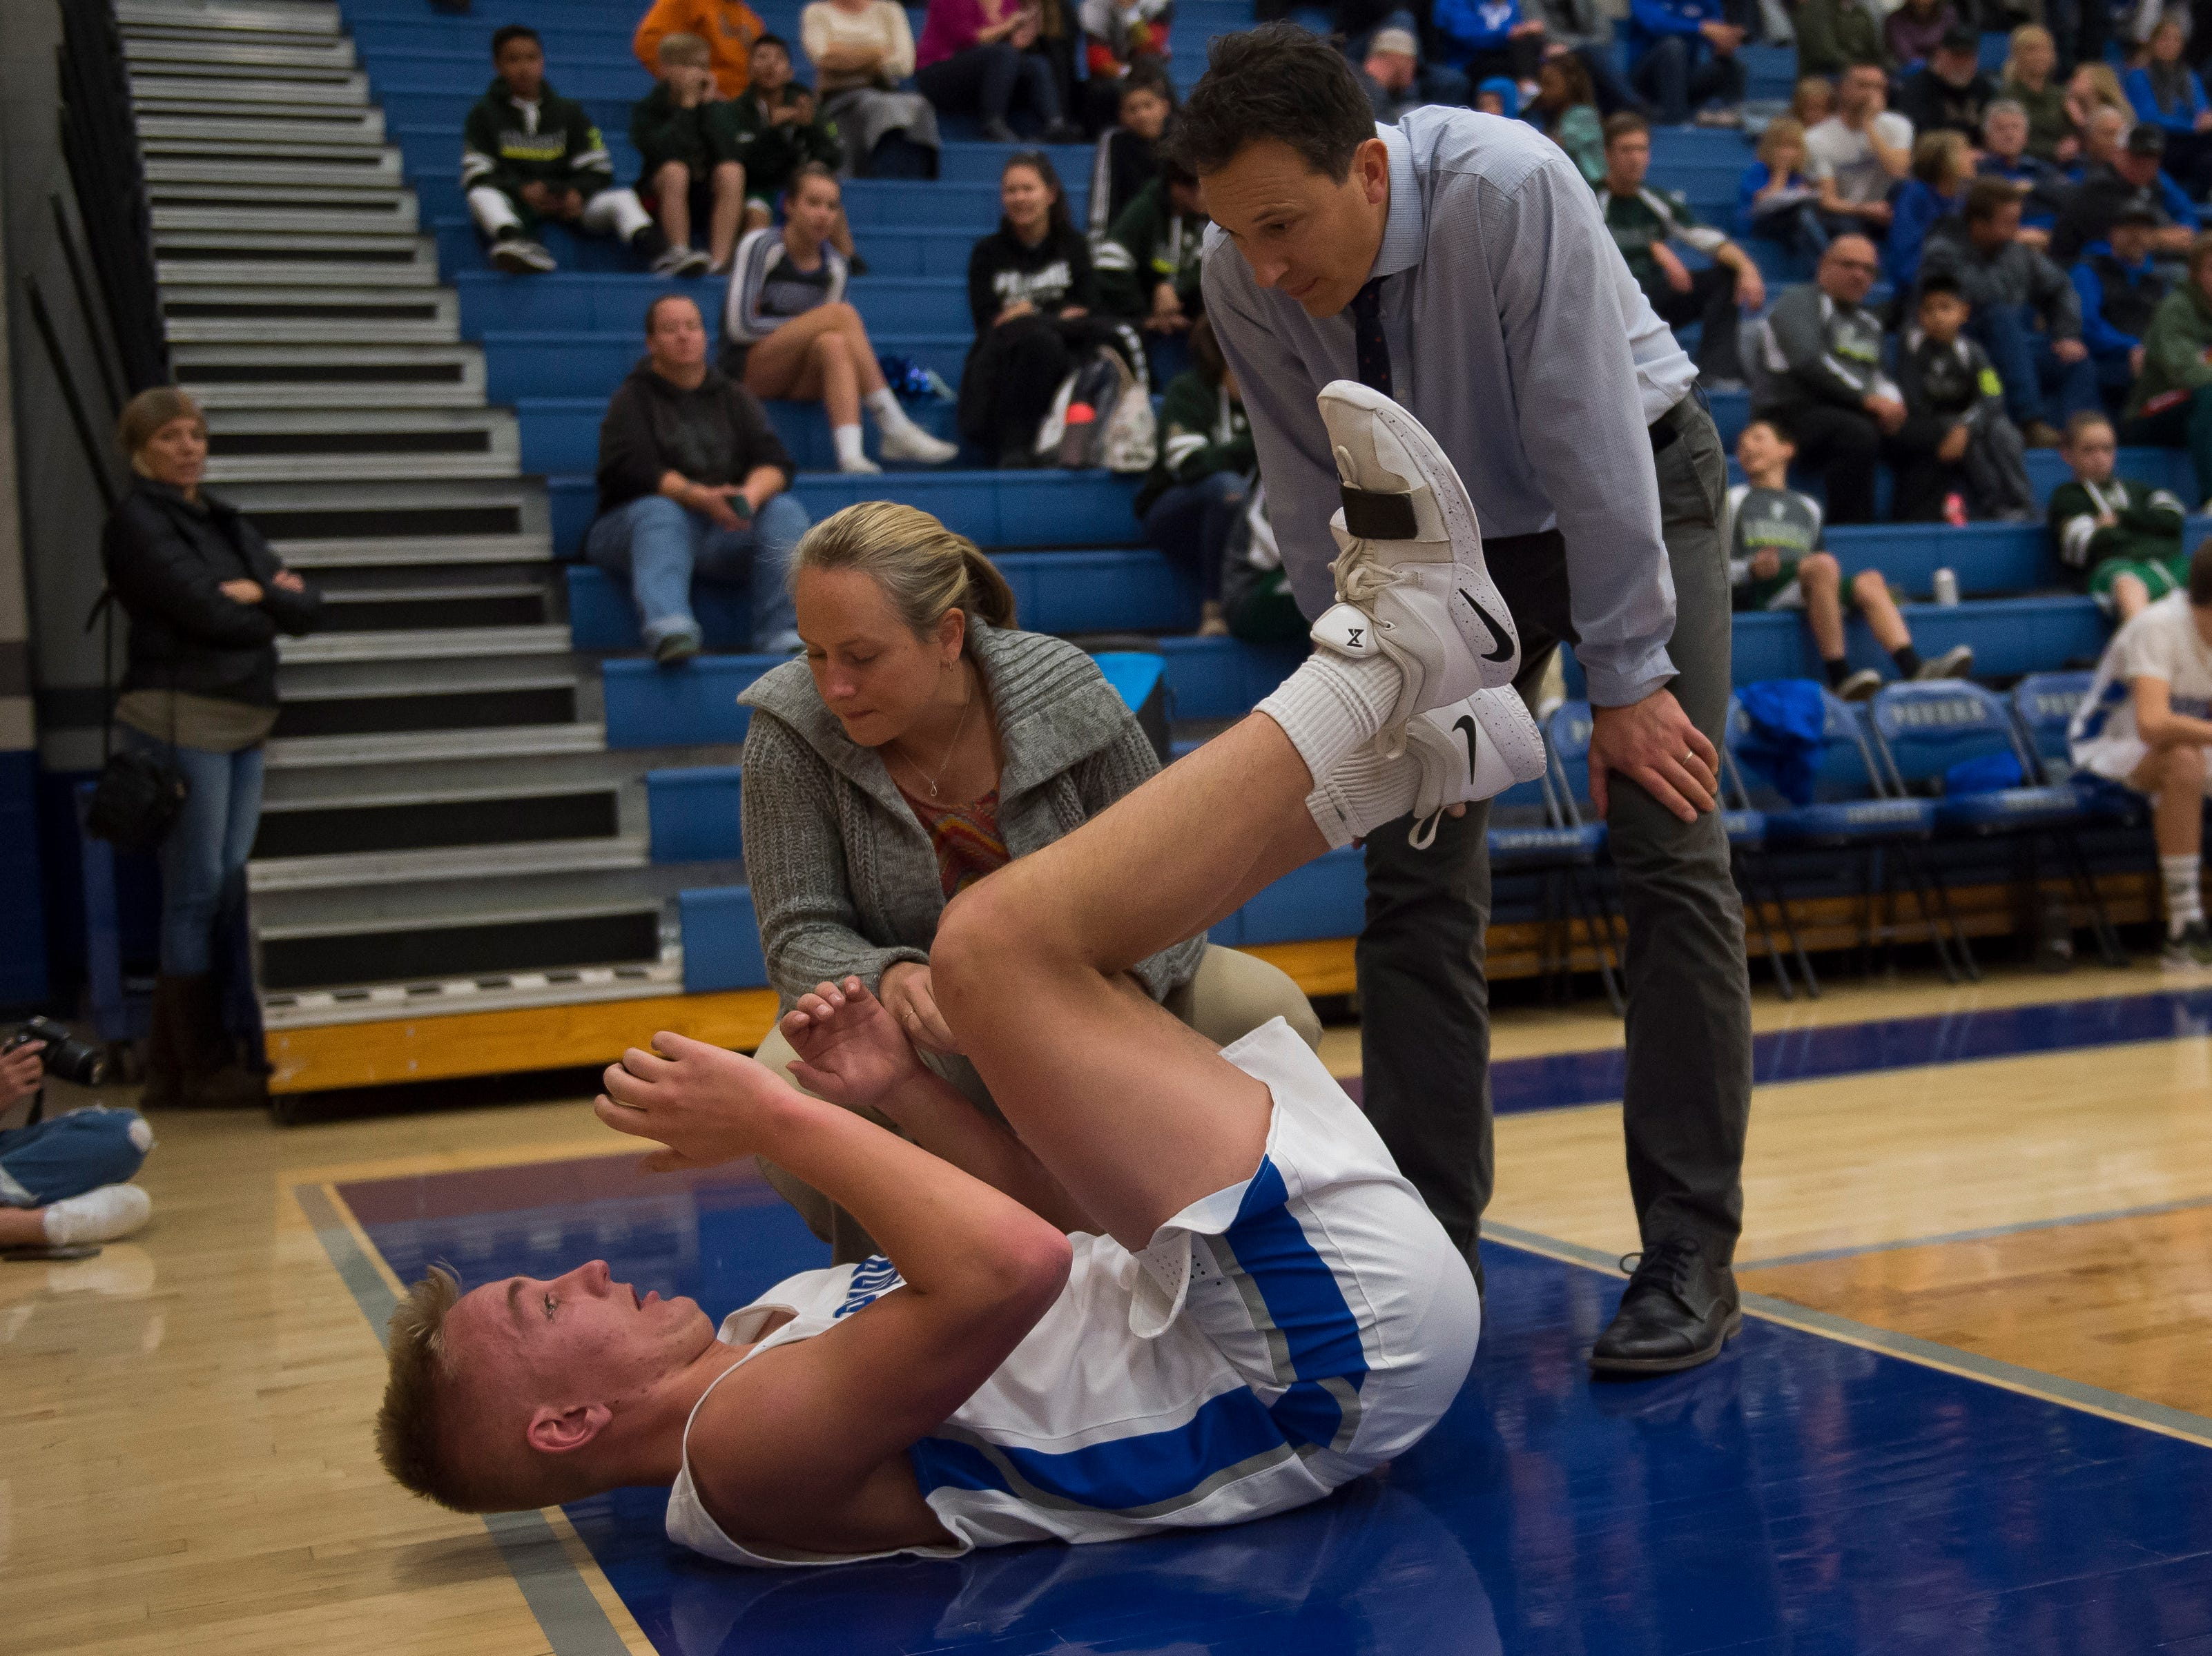 Poudre High School senior Jack Fisher (55) pops back up after going down in a game against Fossil Ridge High School on Tuesday, Dec. 4, 2018, at Poudre High School on Fort Collins, Colo.